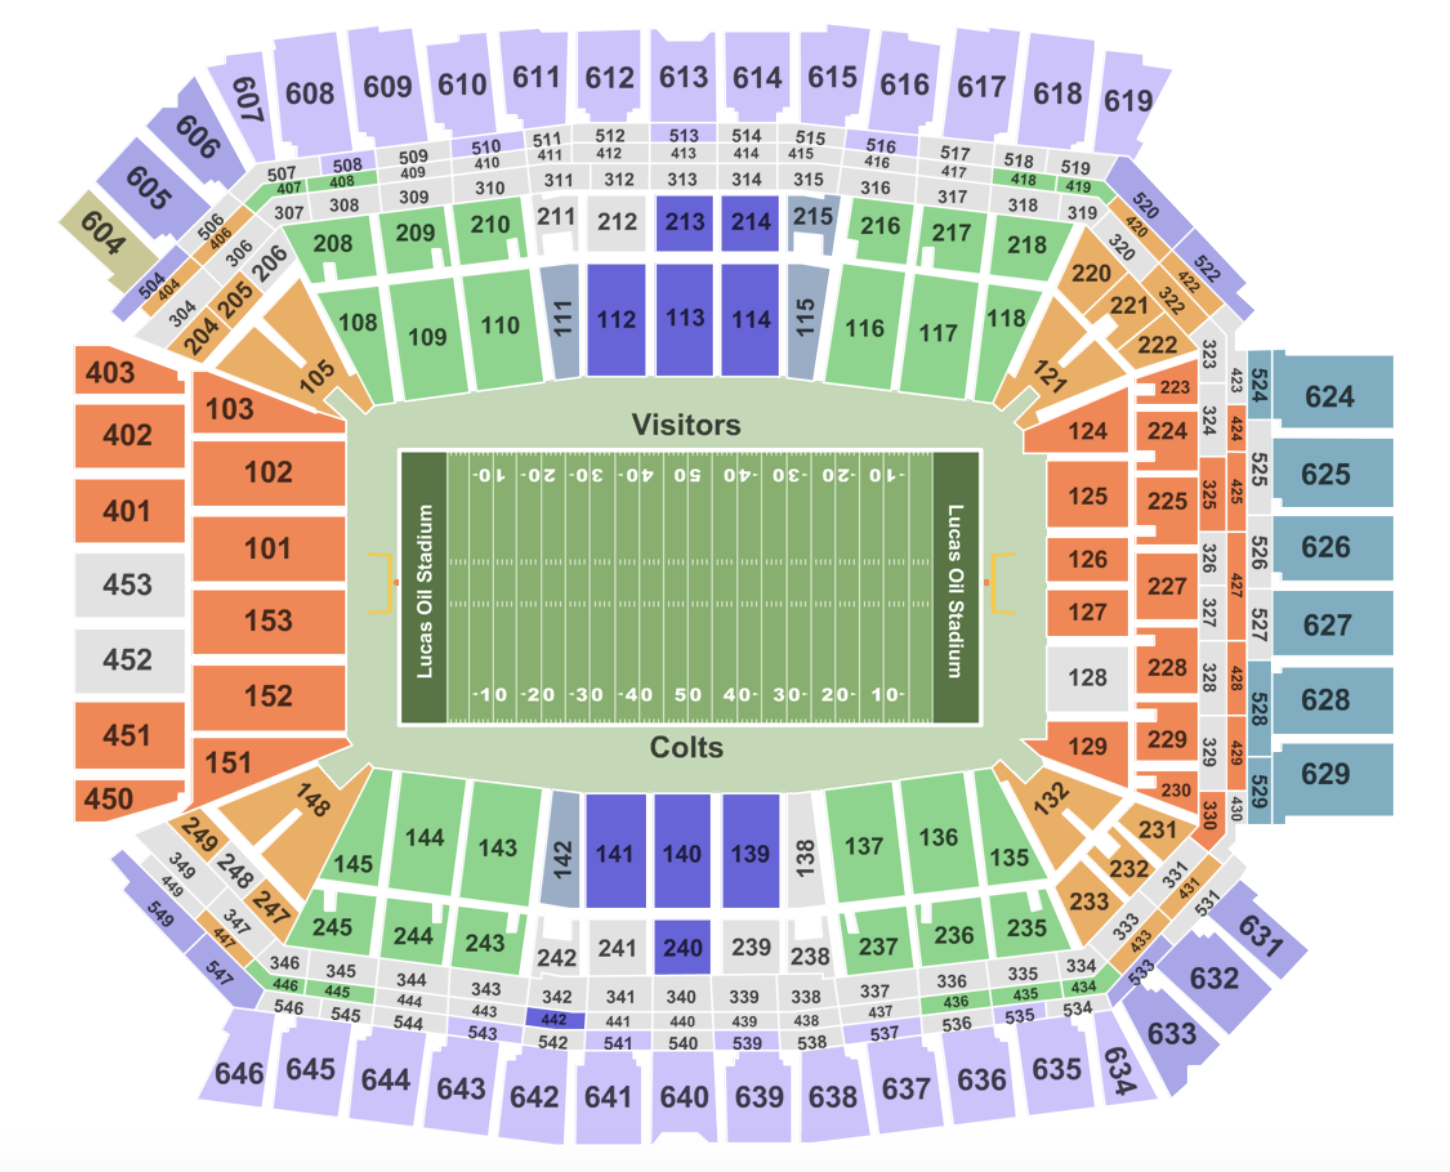 Lucas Oil Stadium Seating Chart View In 2020 Lucas Oil Stadium Seating Charts Big Ten